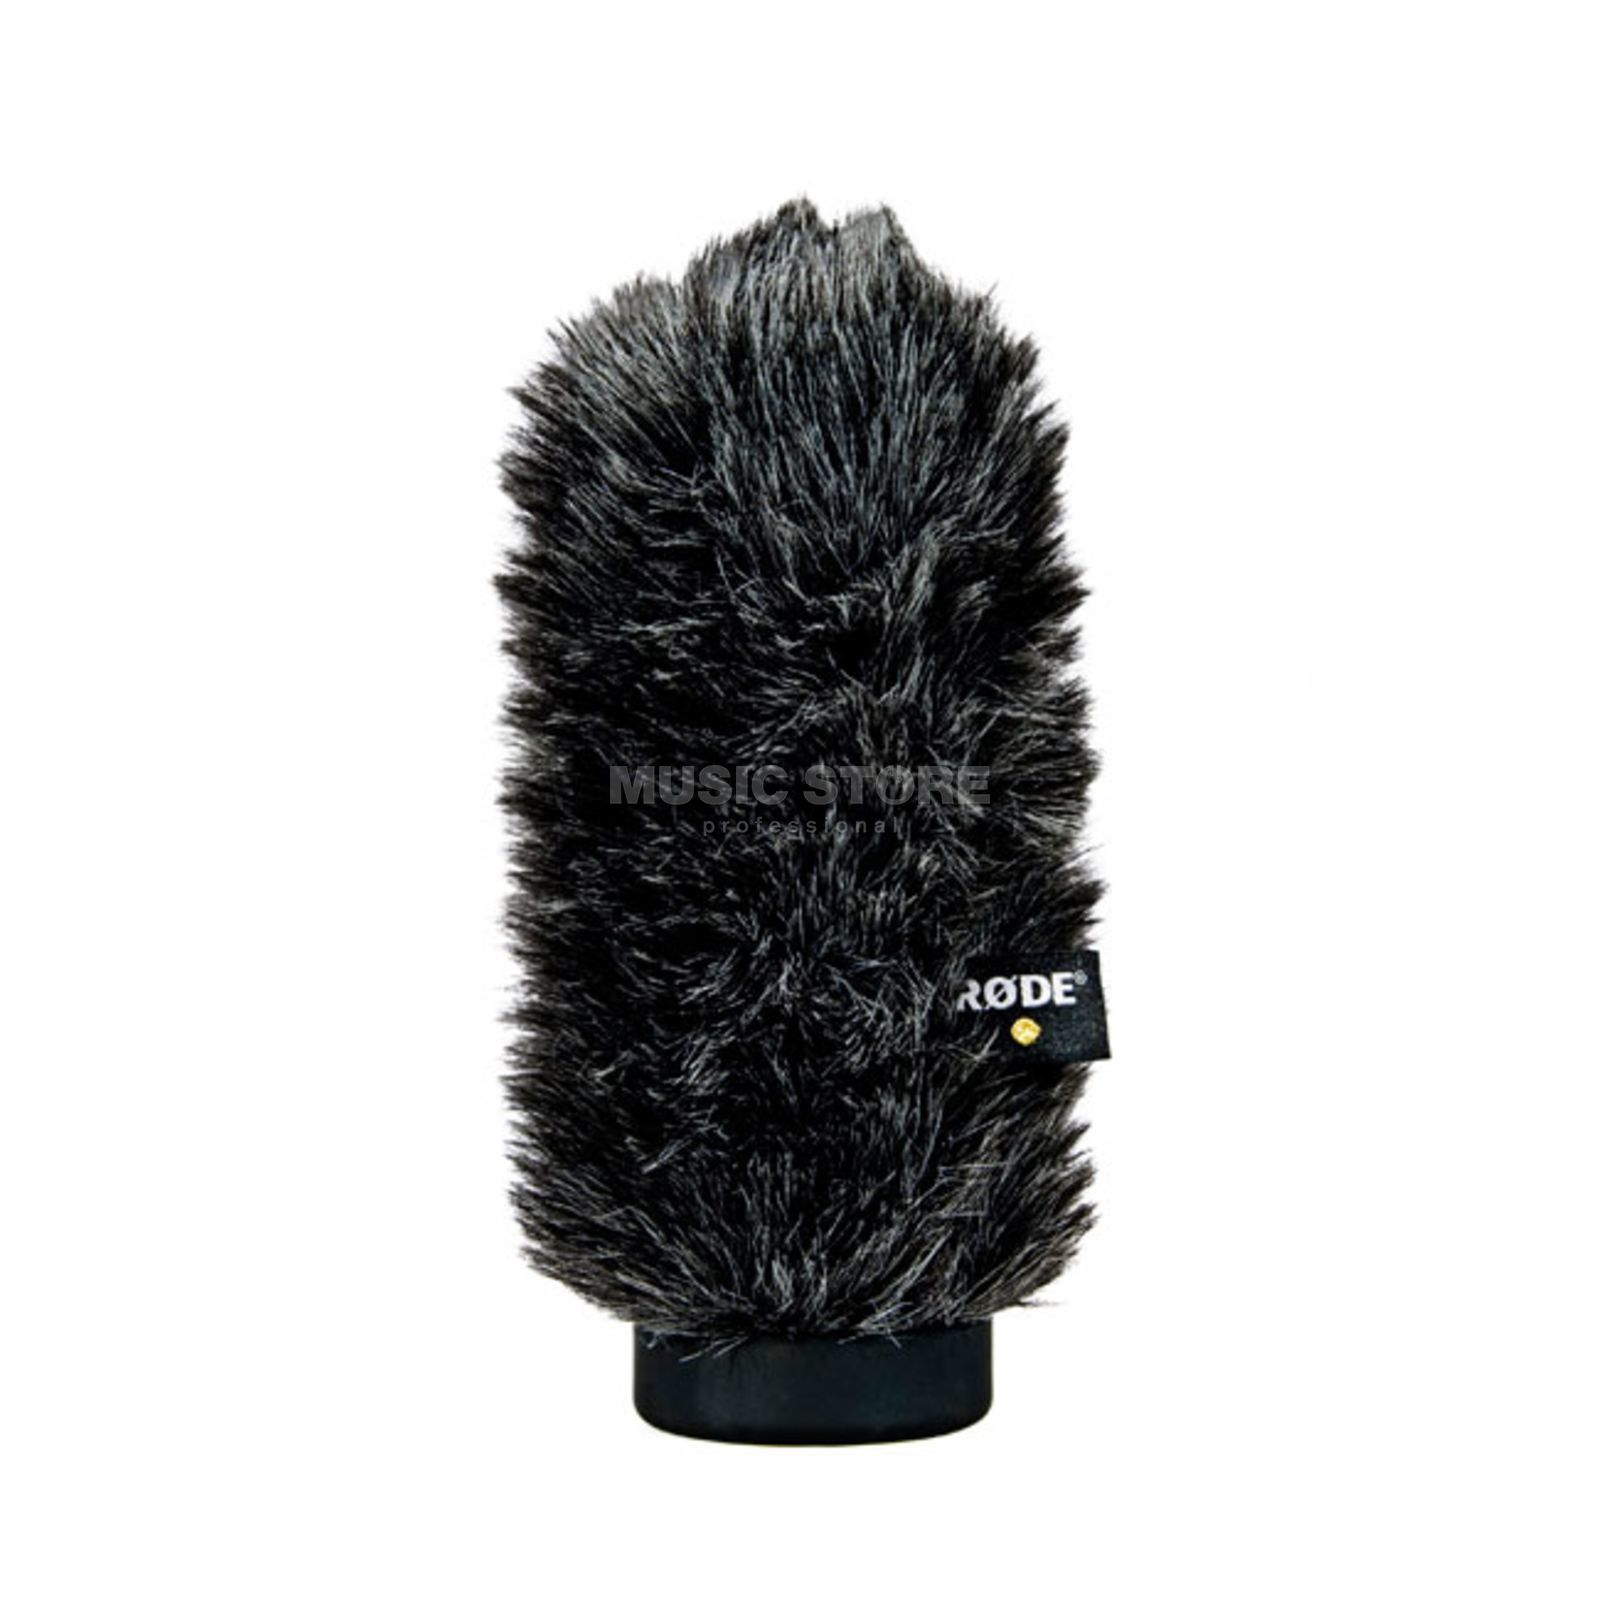 Rode WS6 Deluxe Windshield For NTG-1 And -2 Shotgun Mics Produktbillede